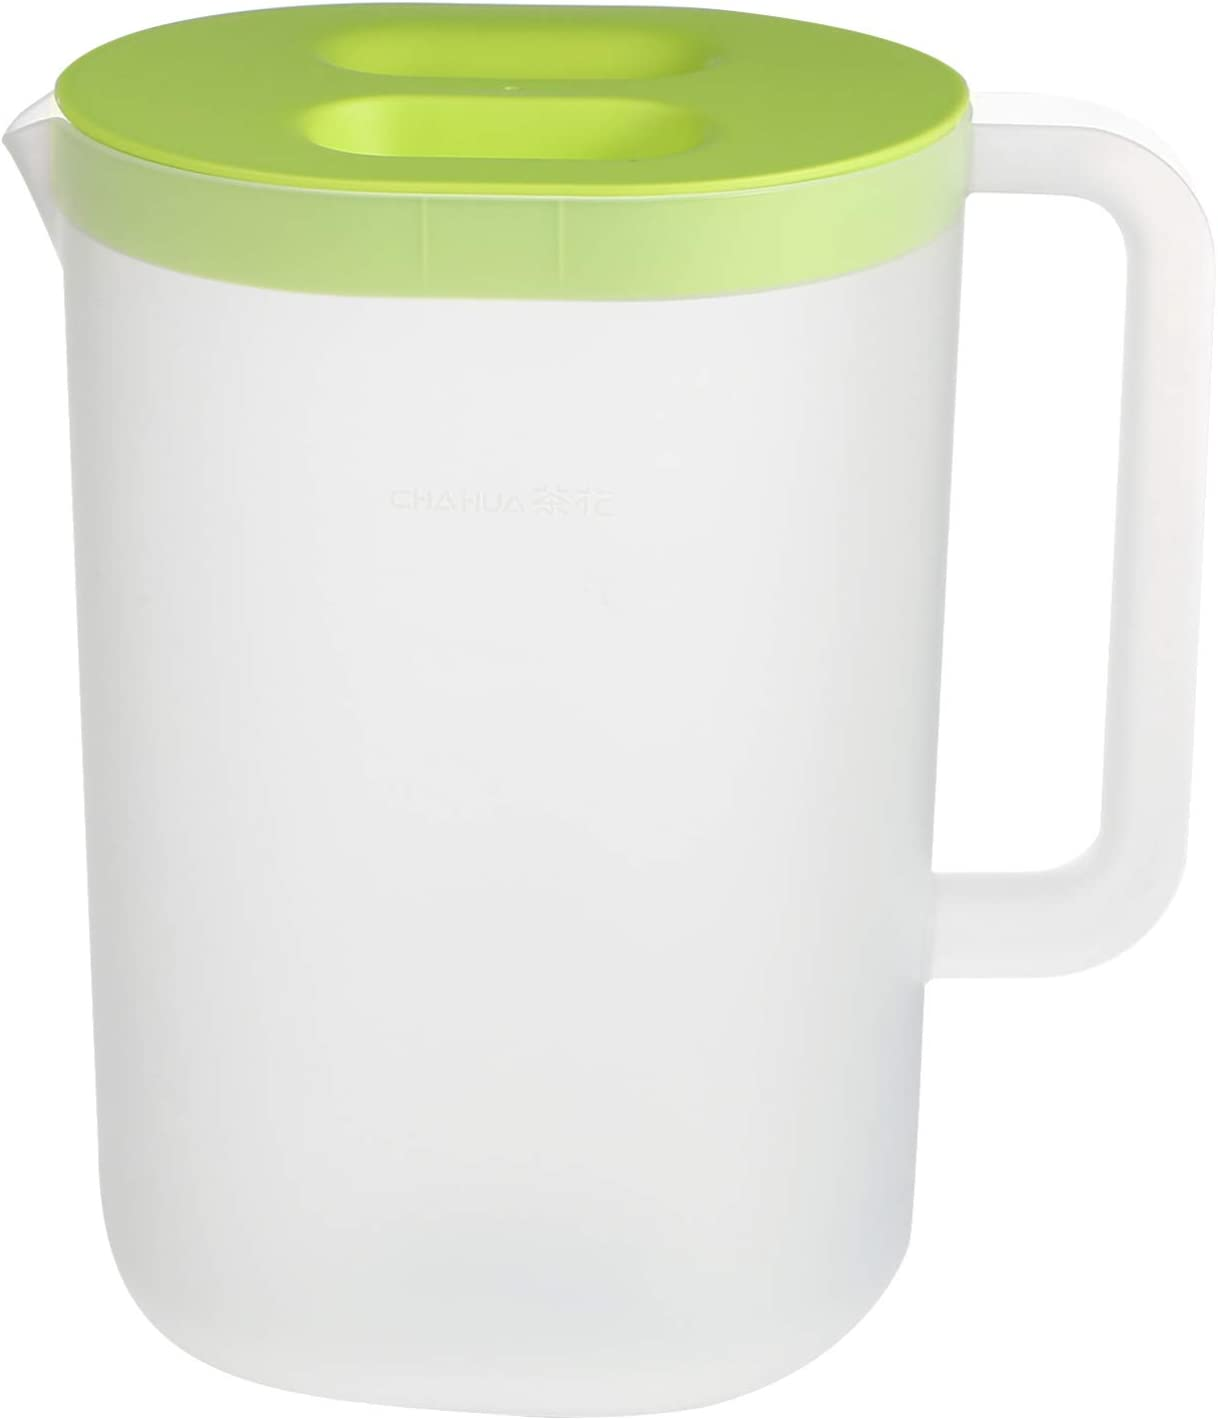 Hemoton 55% OFF Plastic Water Pitcher with Cold Tea Bottle Bev Lid Online limited product